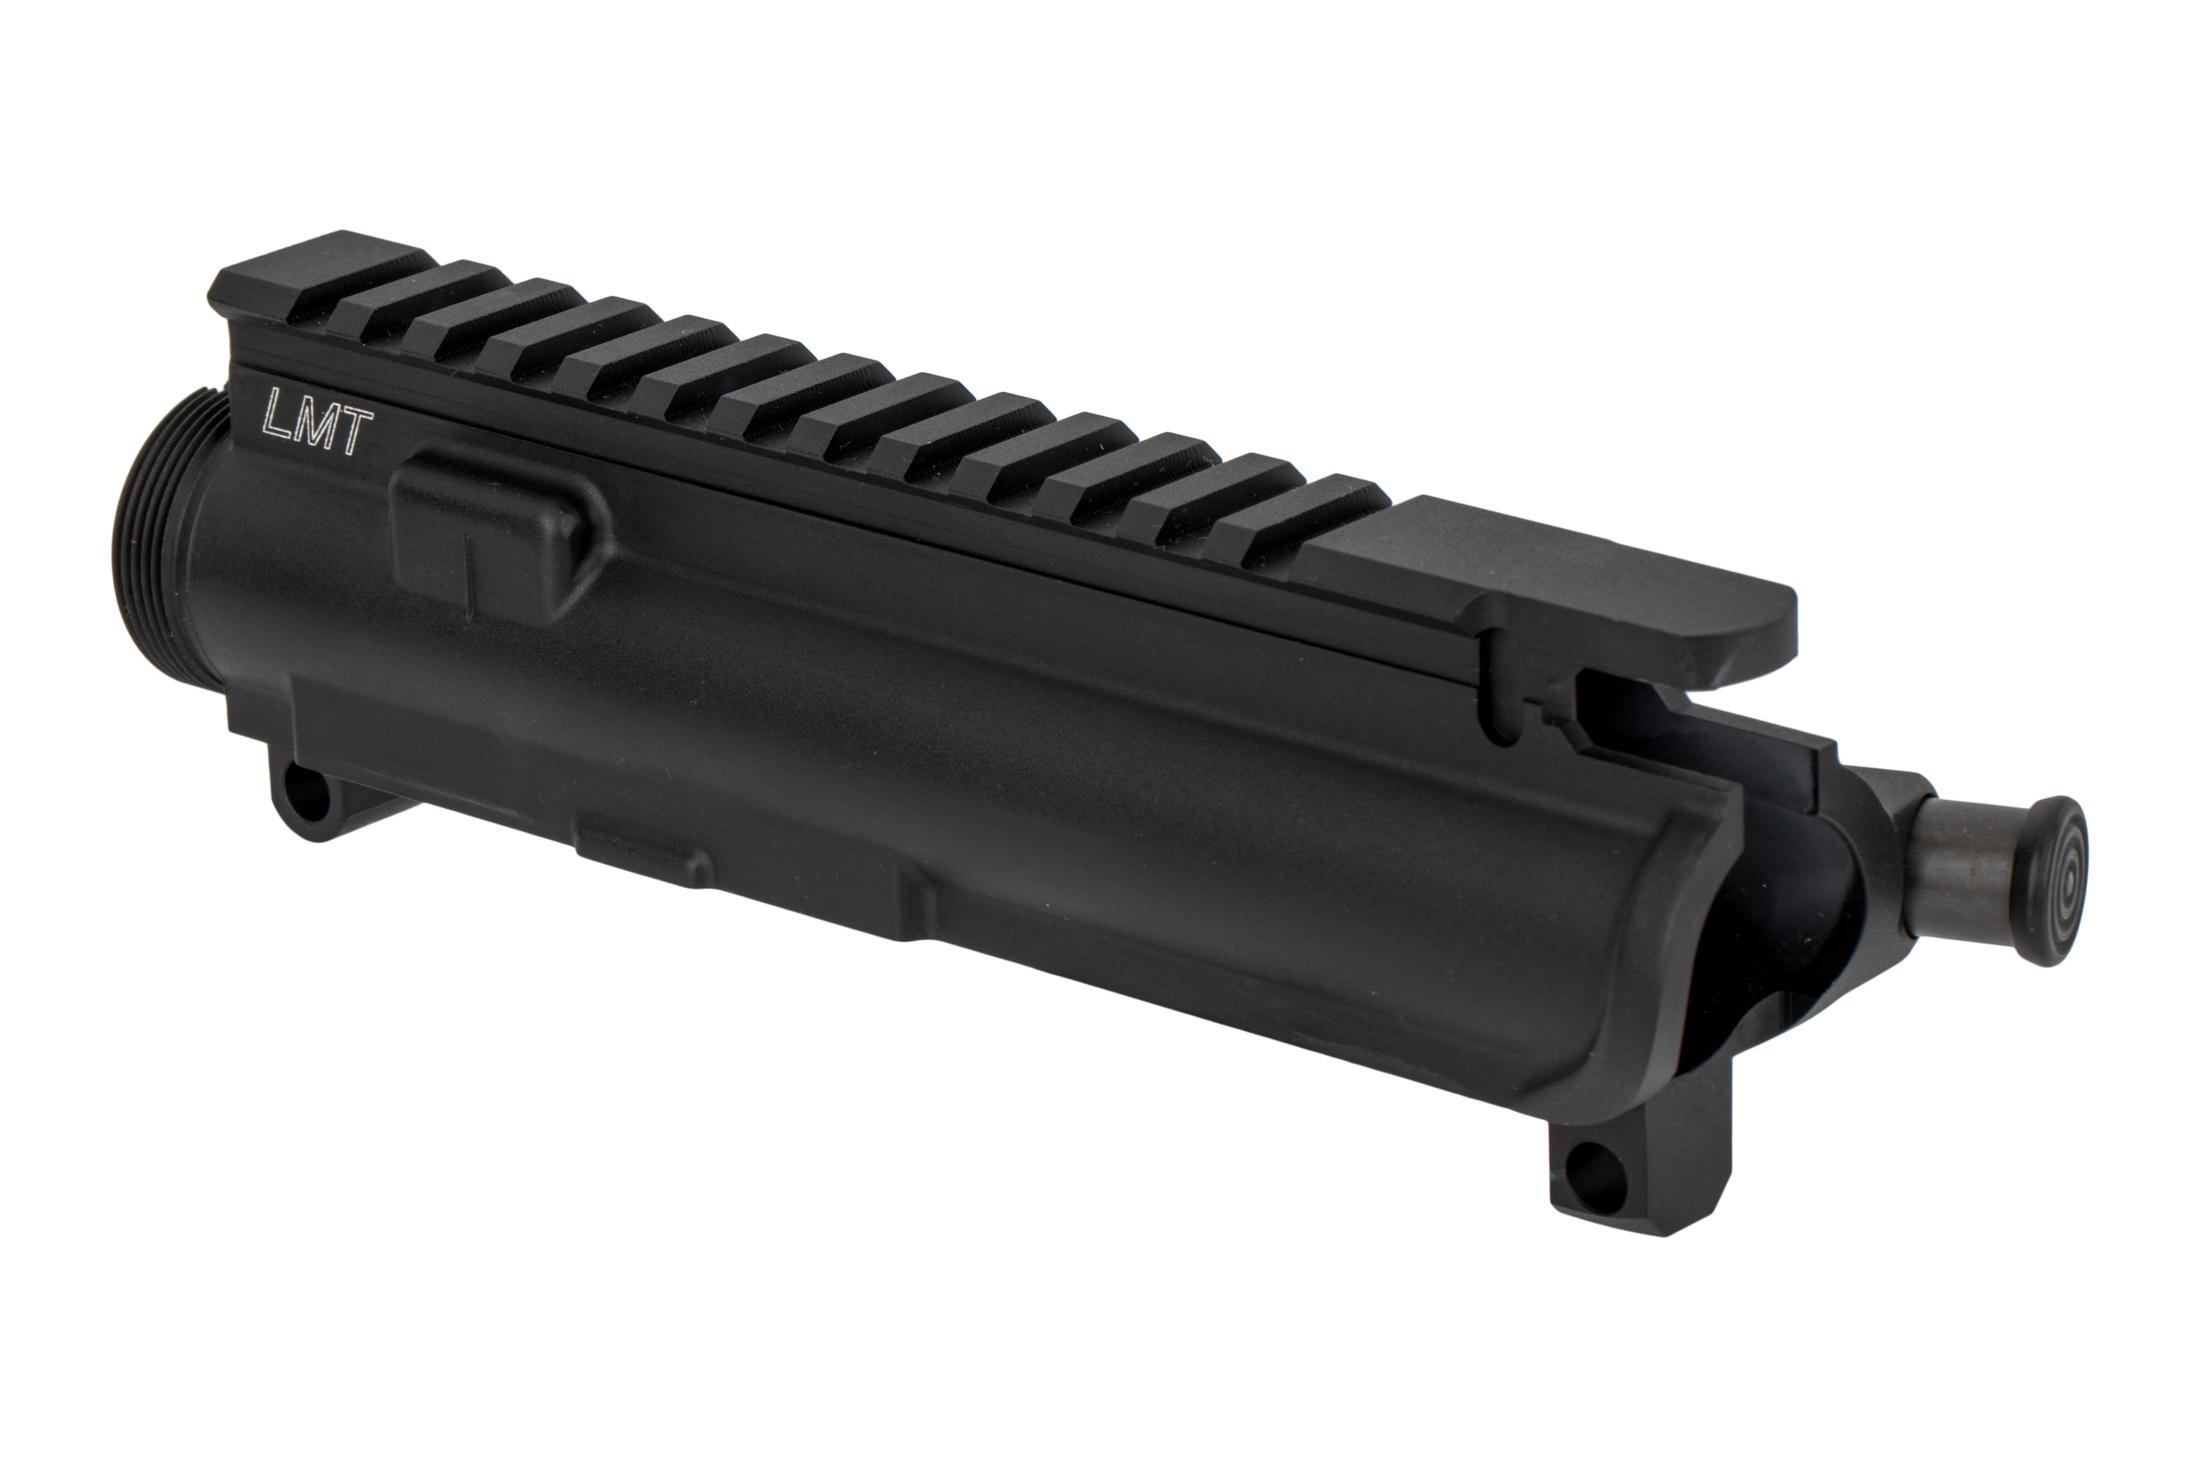 The Lewis Machine and Tool AR-15 upper receiver features a hardcoat anodized finish